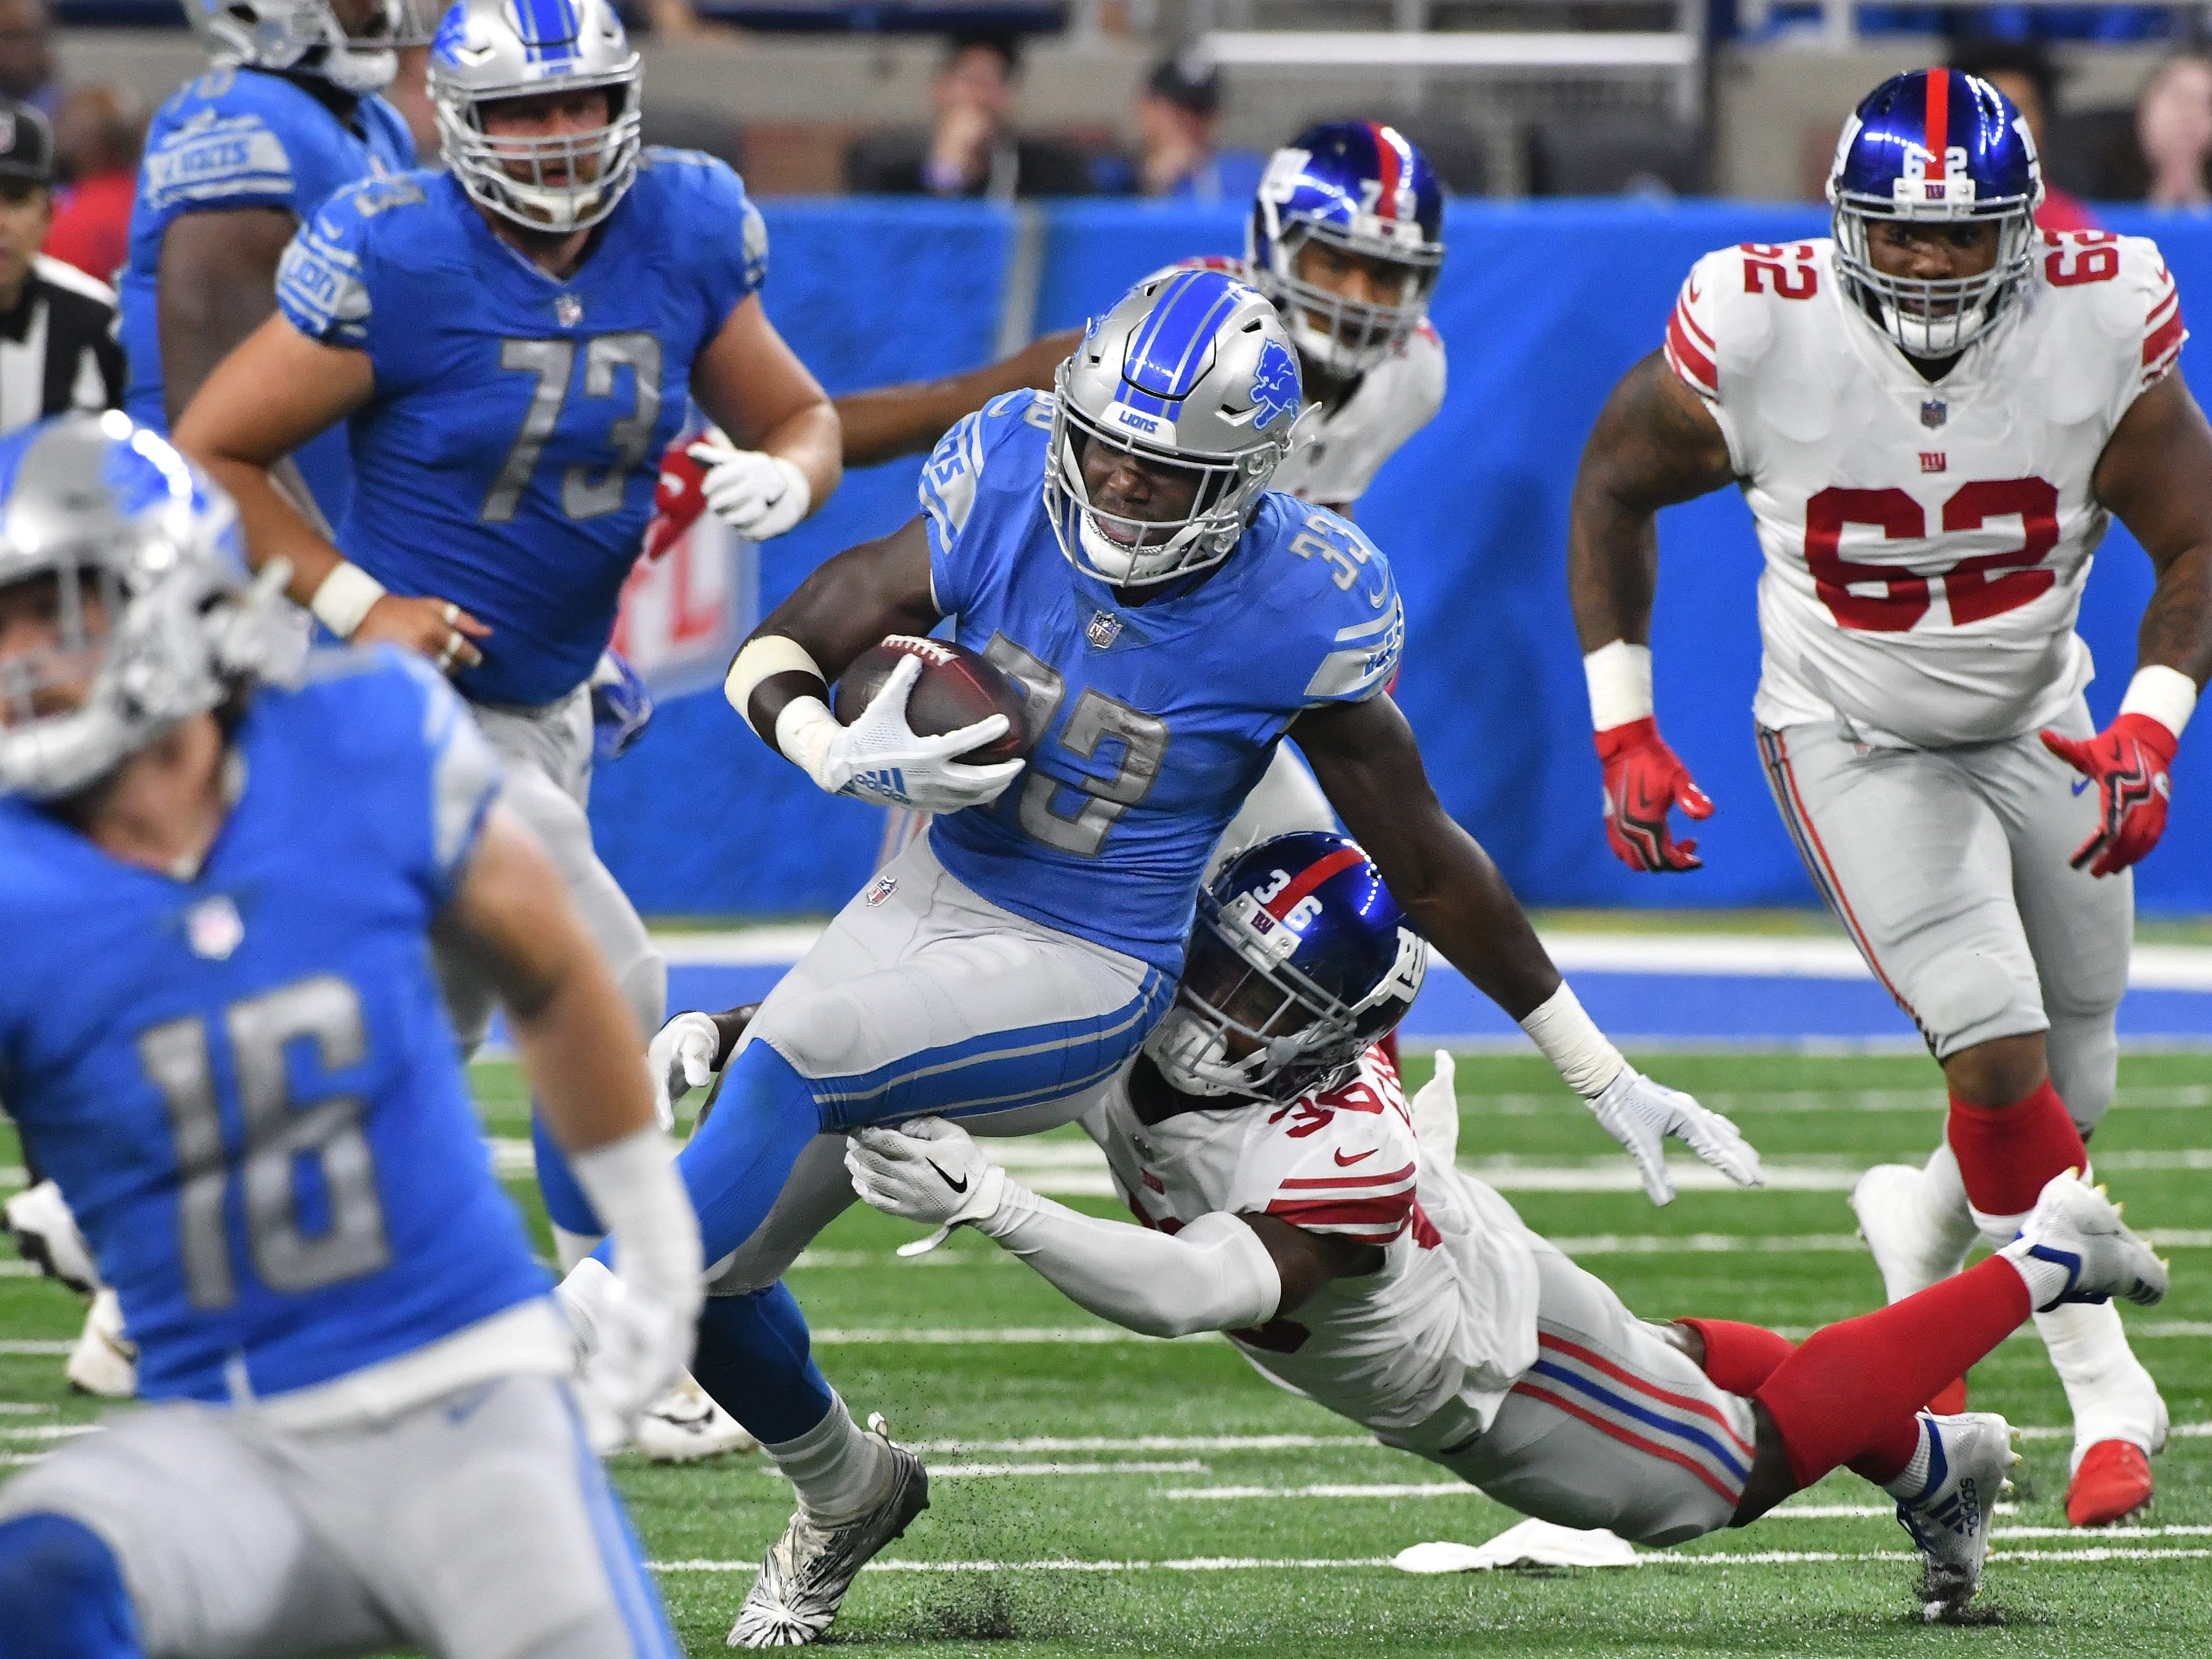 Lions running back Kerryon Johnson scrambles up field in the fourth quarter.